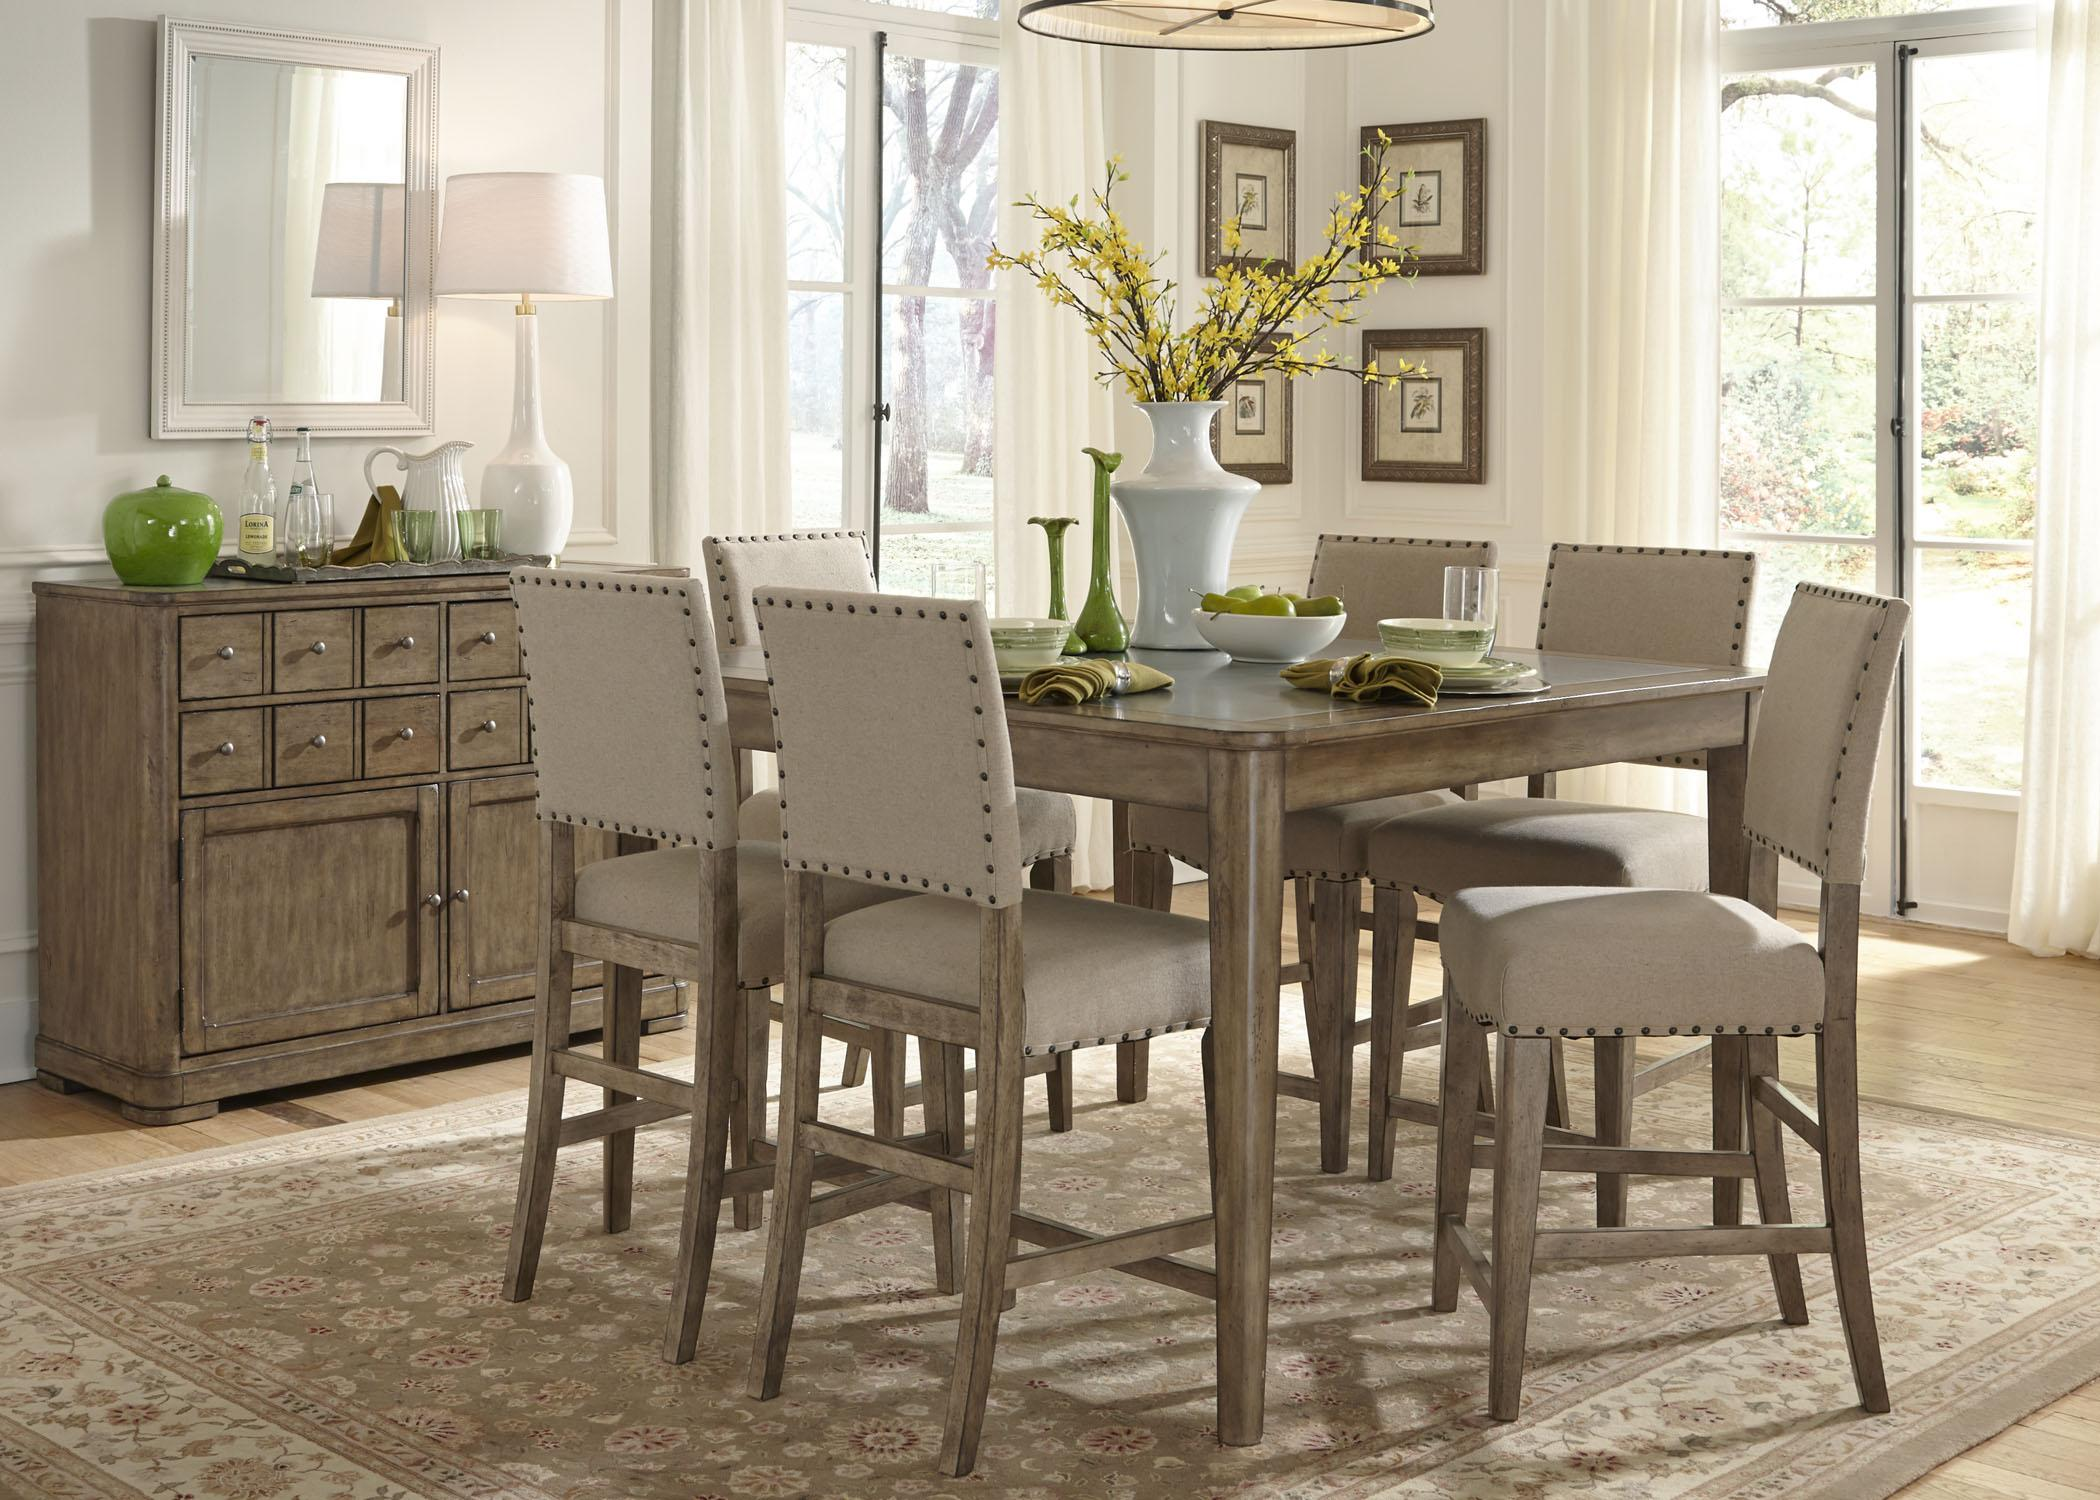 Liberty Furniture Weatherford 645-CD-5GTS 5 Piece Gathering Table Set | Northeast Factory Direct | Dining 5 Piece Set Cleveland Eastlake Westlake Mentor ... & Liberty Furniture Weatherford 645-CD-5GTS 5 Piece Gathering Table ...